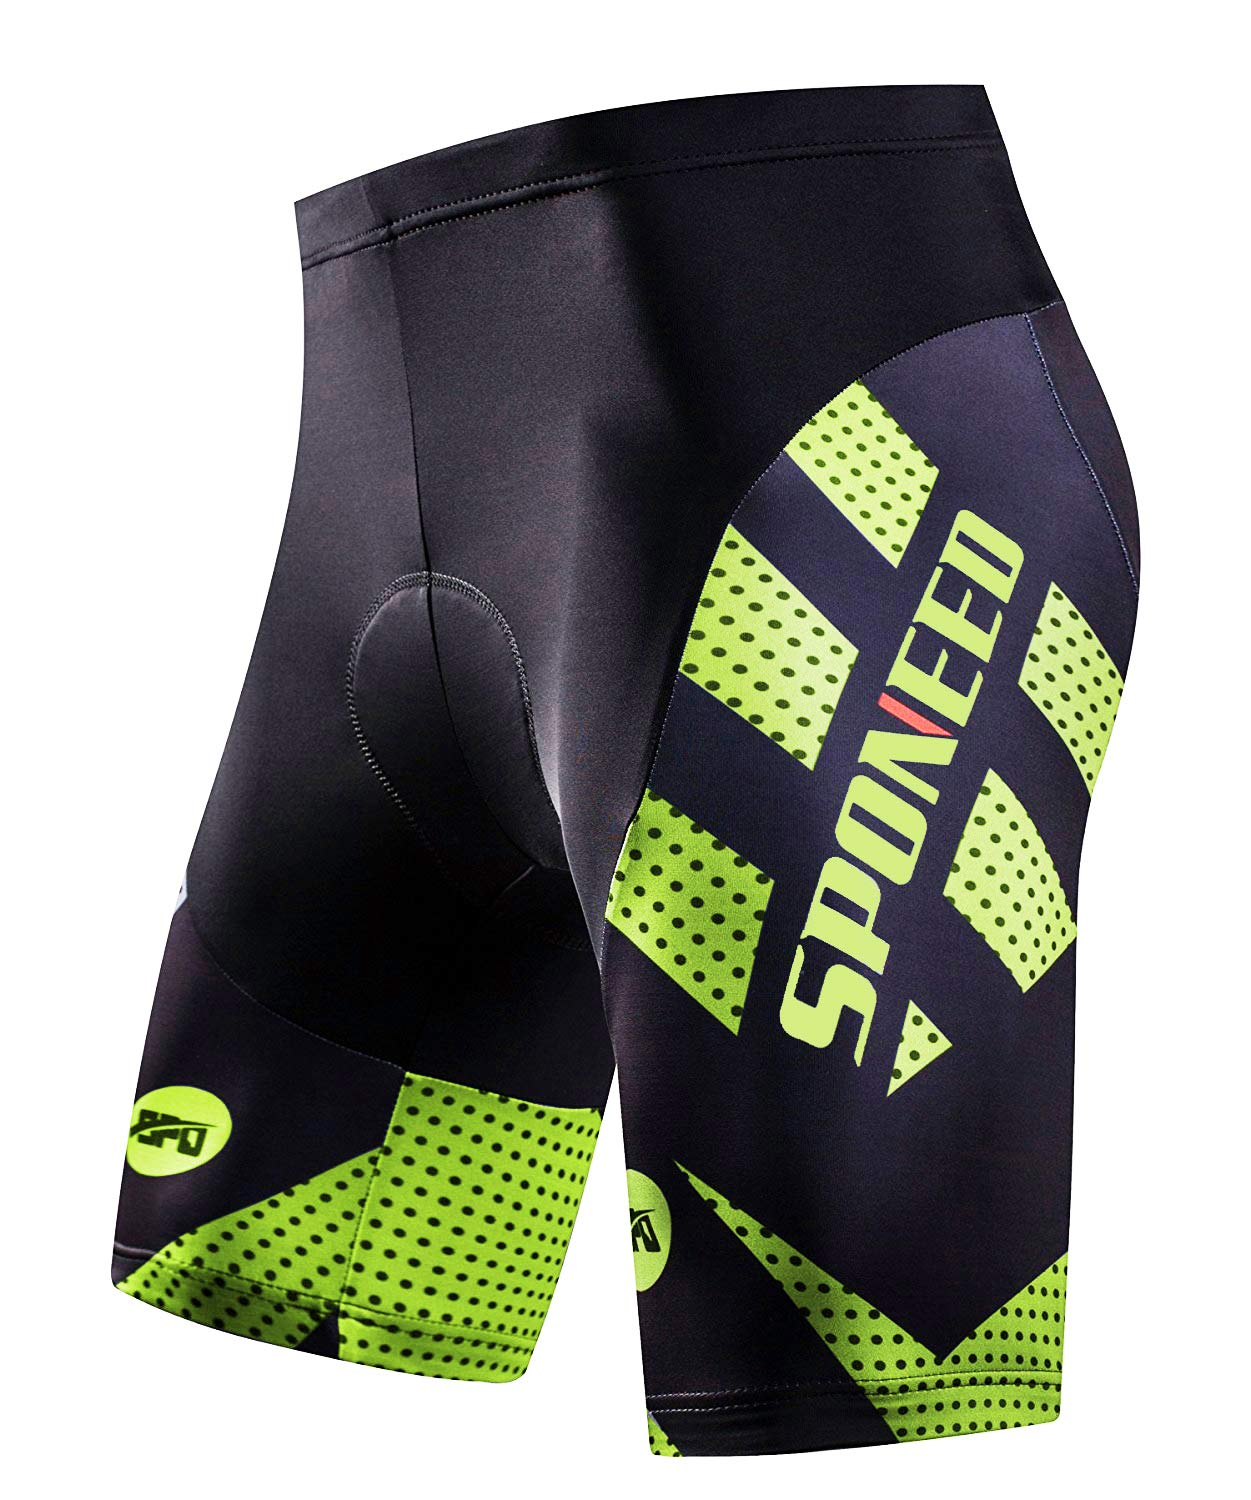 sponeed Men's Cycle Shorts Tights Biking Bicycle Bottoms Gel Padds Outdoor Cycling Mountain Pants Asia XXXL/US XXL Green by sponeed